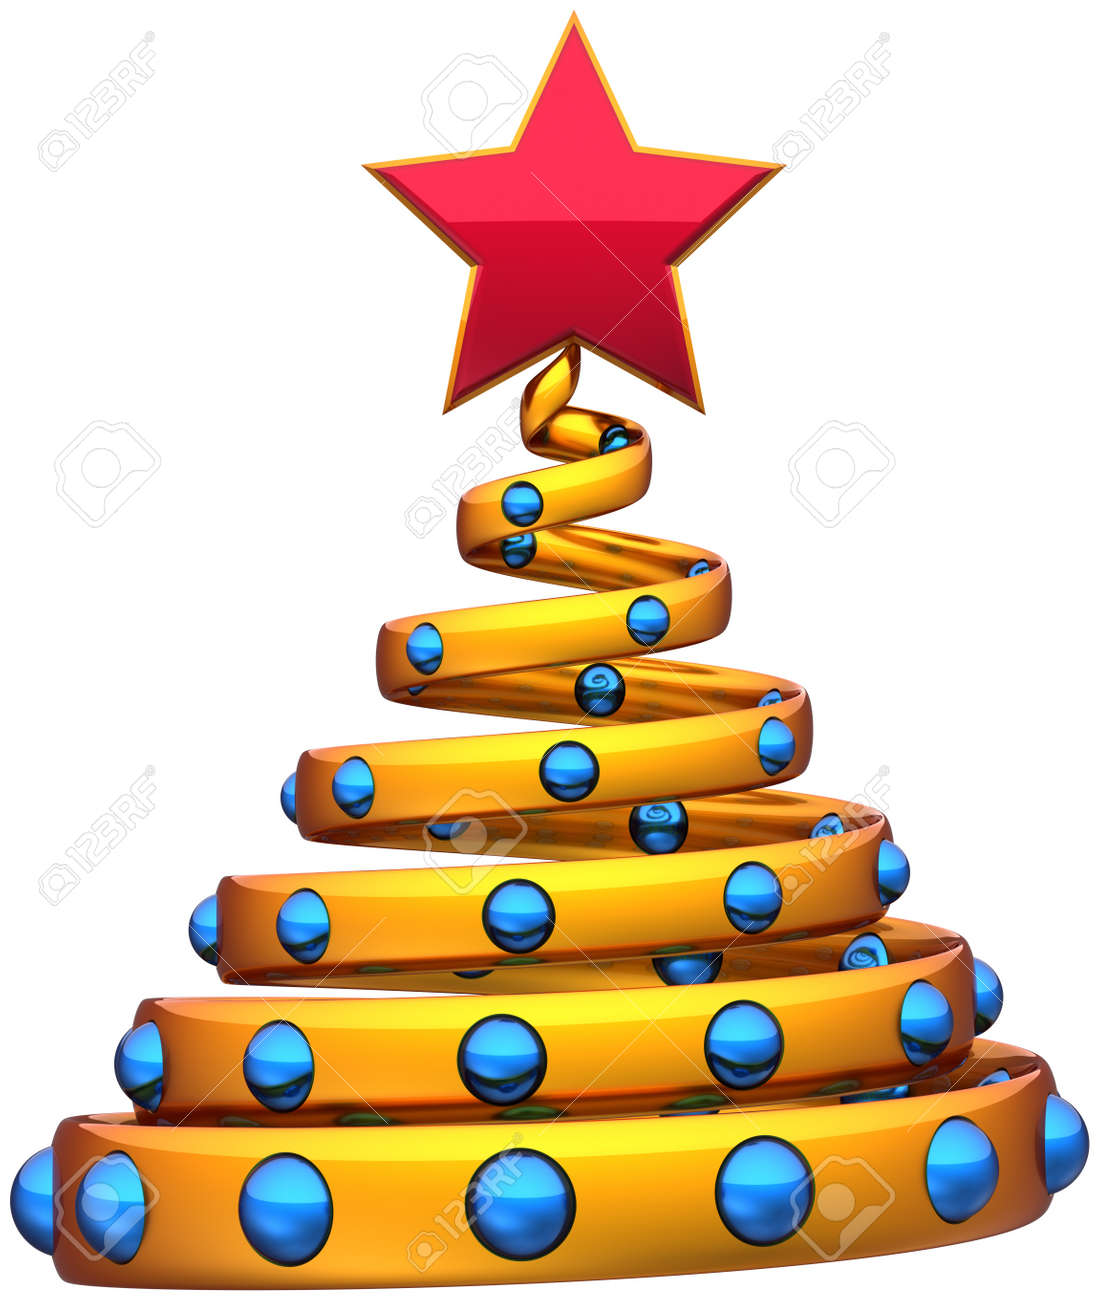 Christmas tree New Year bauble stylized golden with blue balls and red star. Beautiful wintertime symbol Xmas holidays icon concept. Detailed 3d rendering. Isolated on white background Stock Photo - 11138103